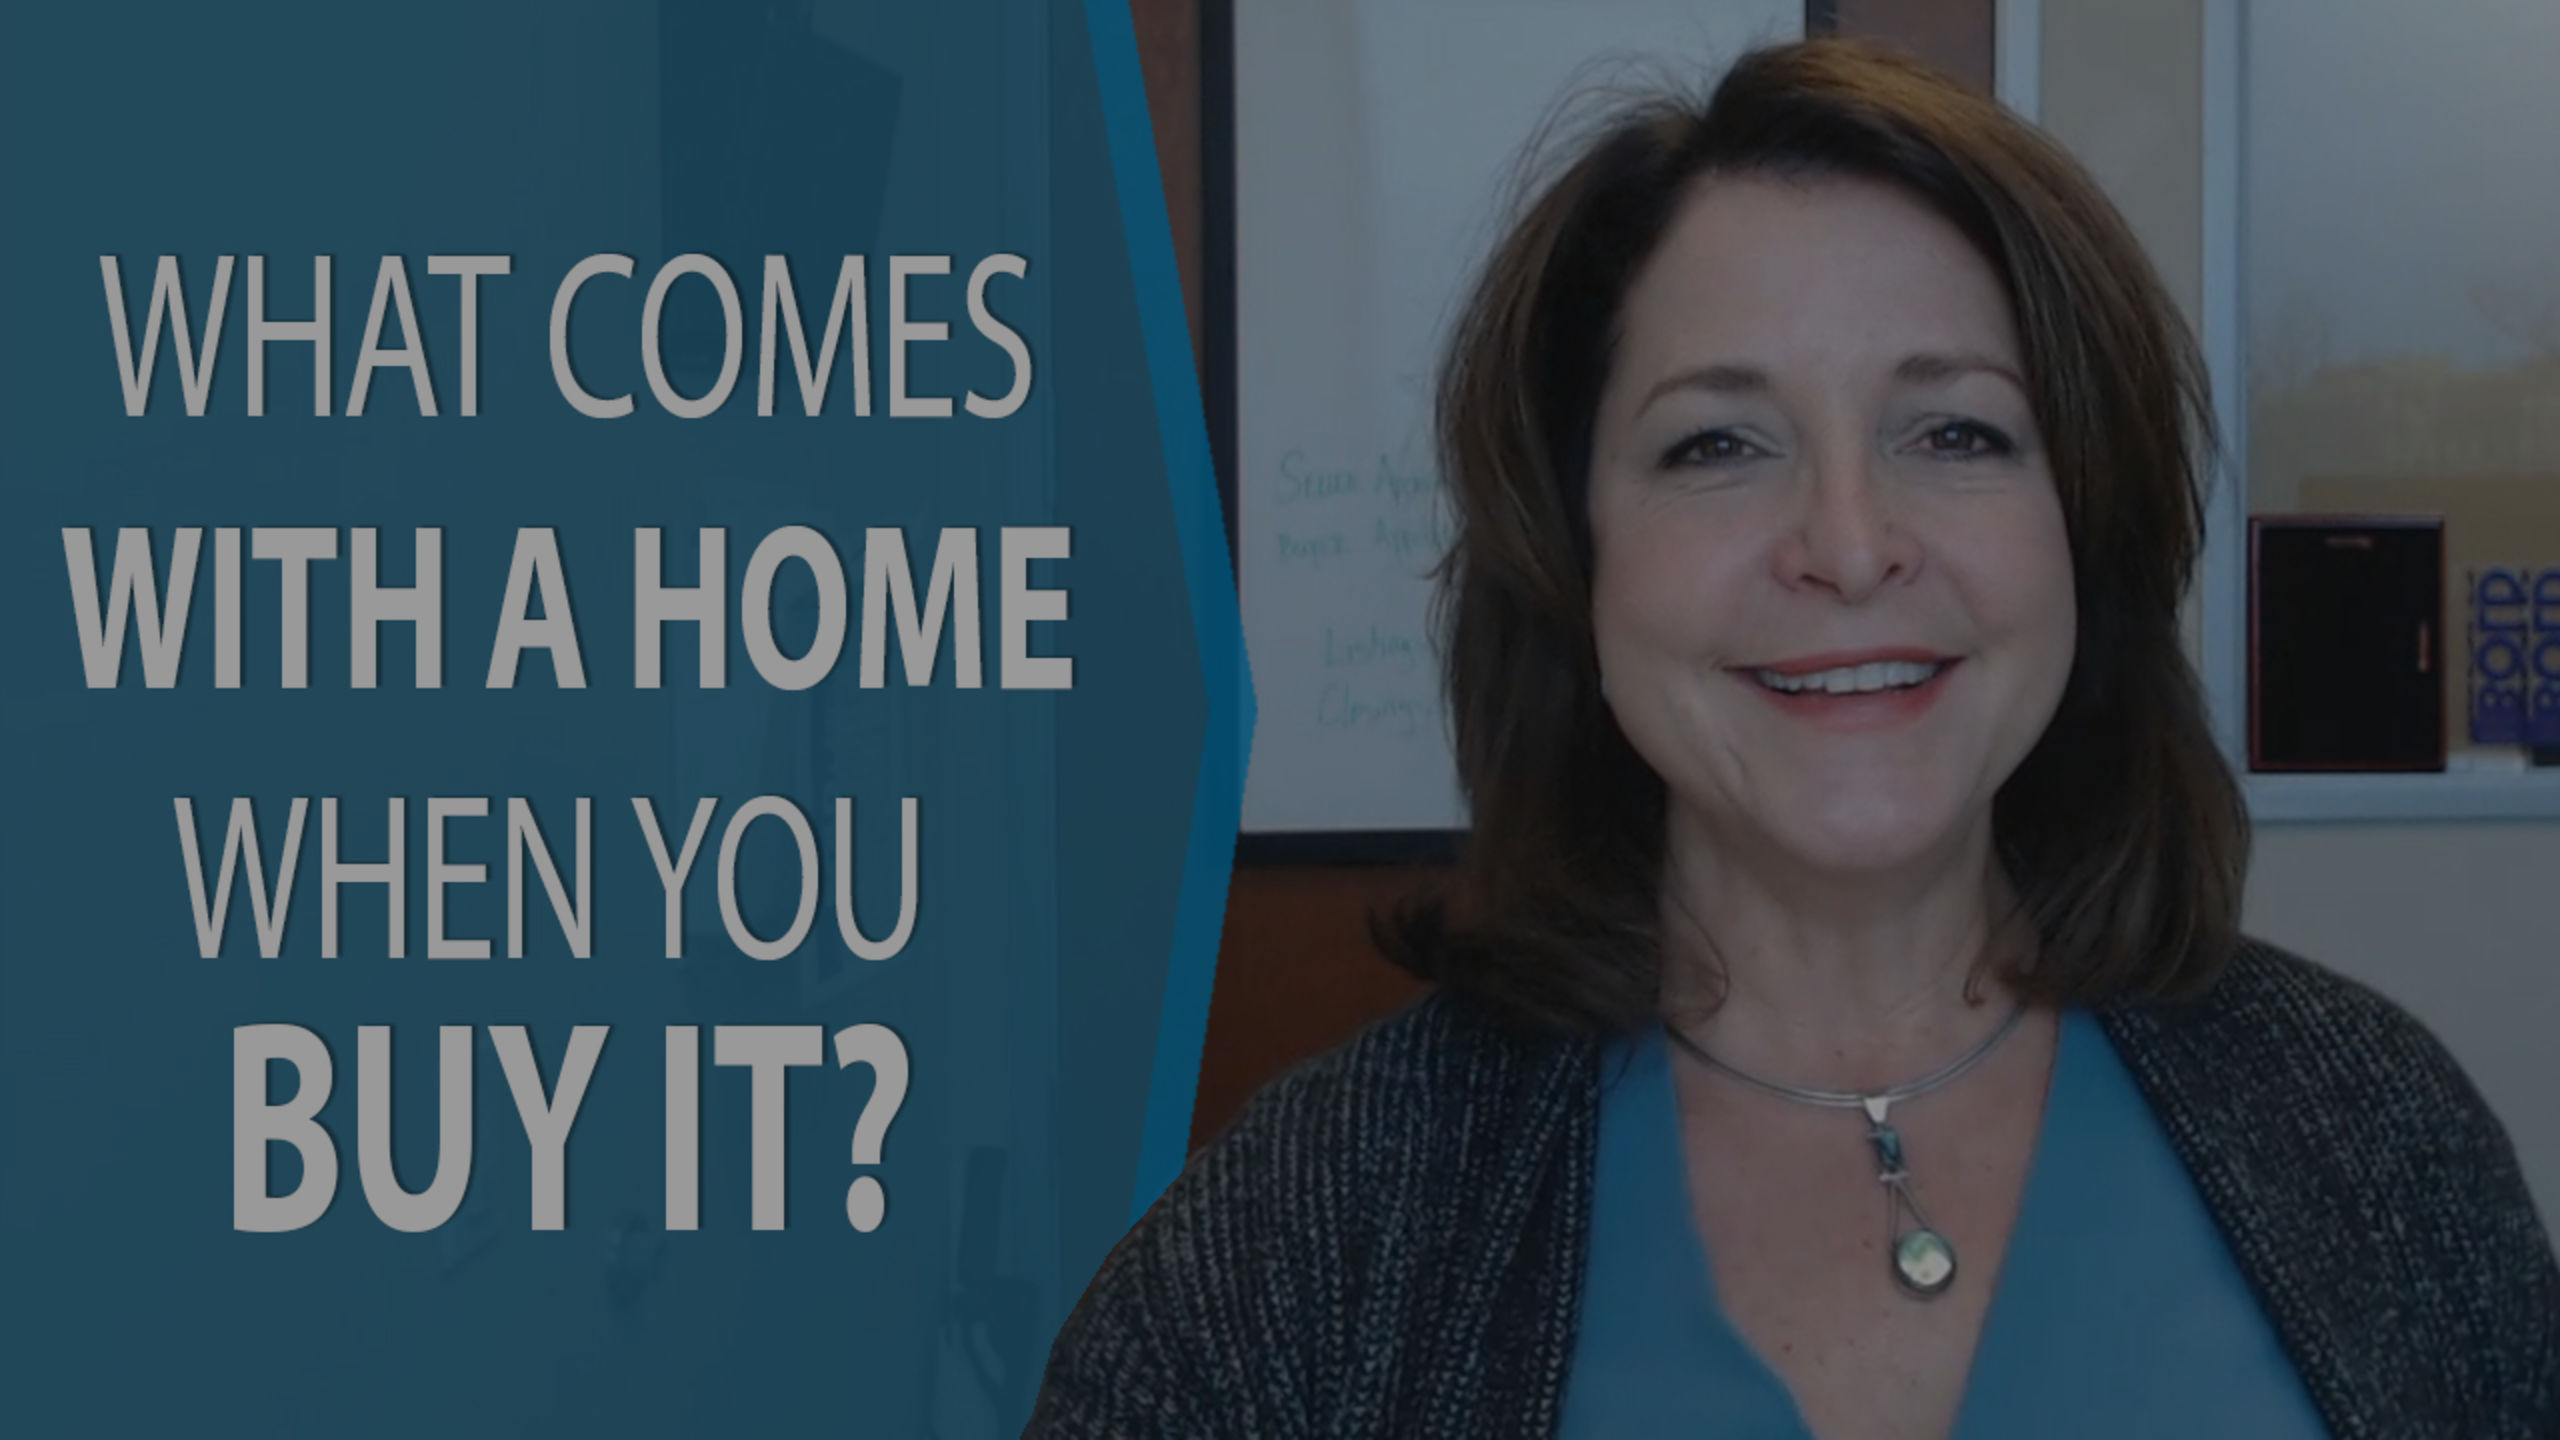 What Is All Included When You Buy a Home?